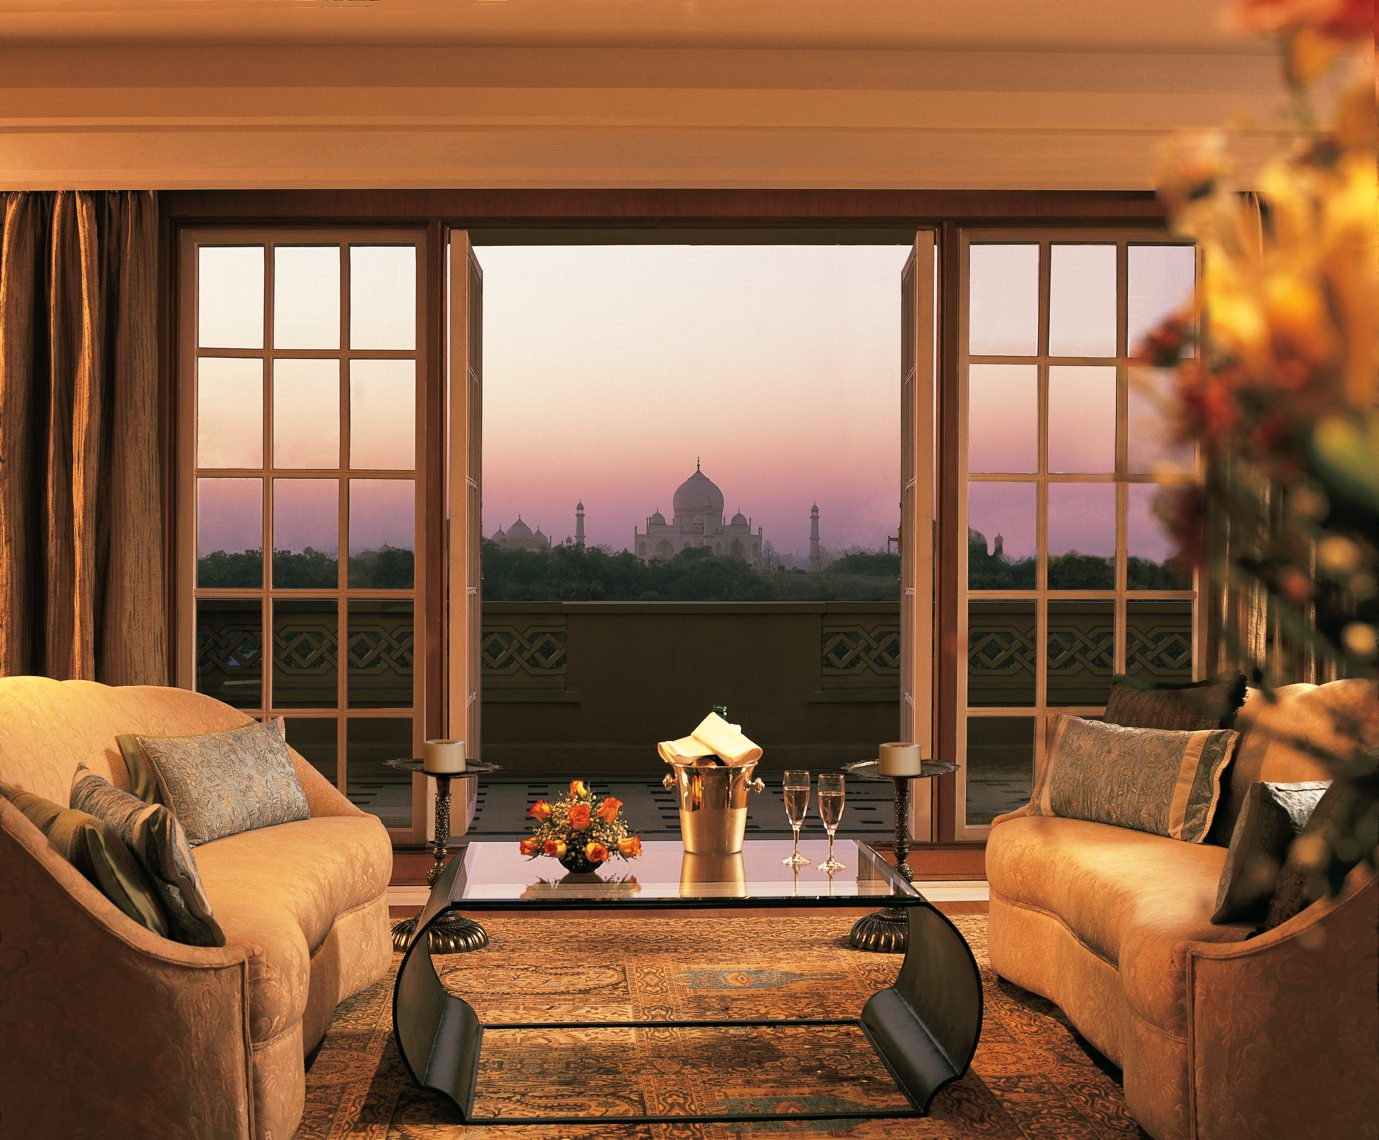 009-The Oberoi Amarvilas, Agra - Kohinoor Suite Living Room Balcony.jpg